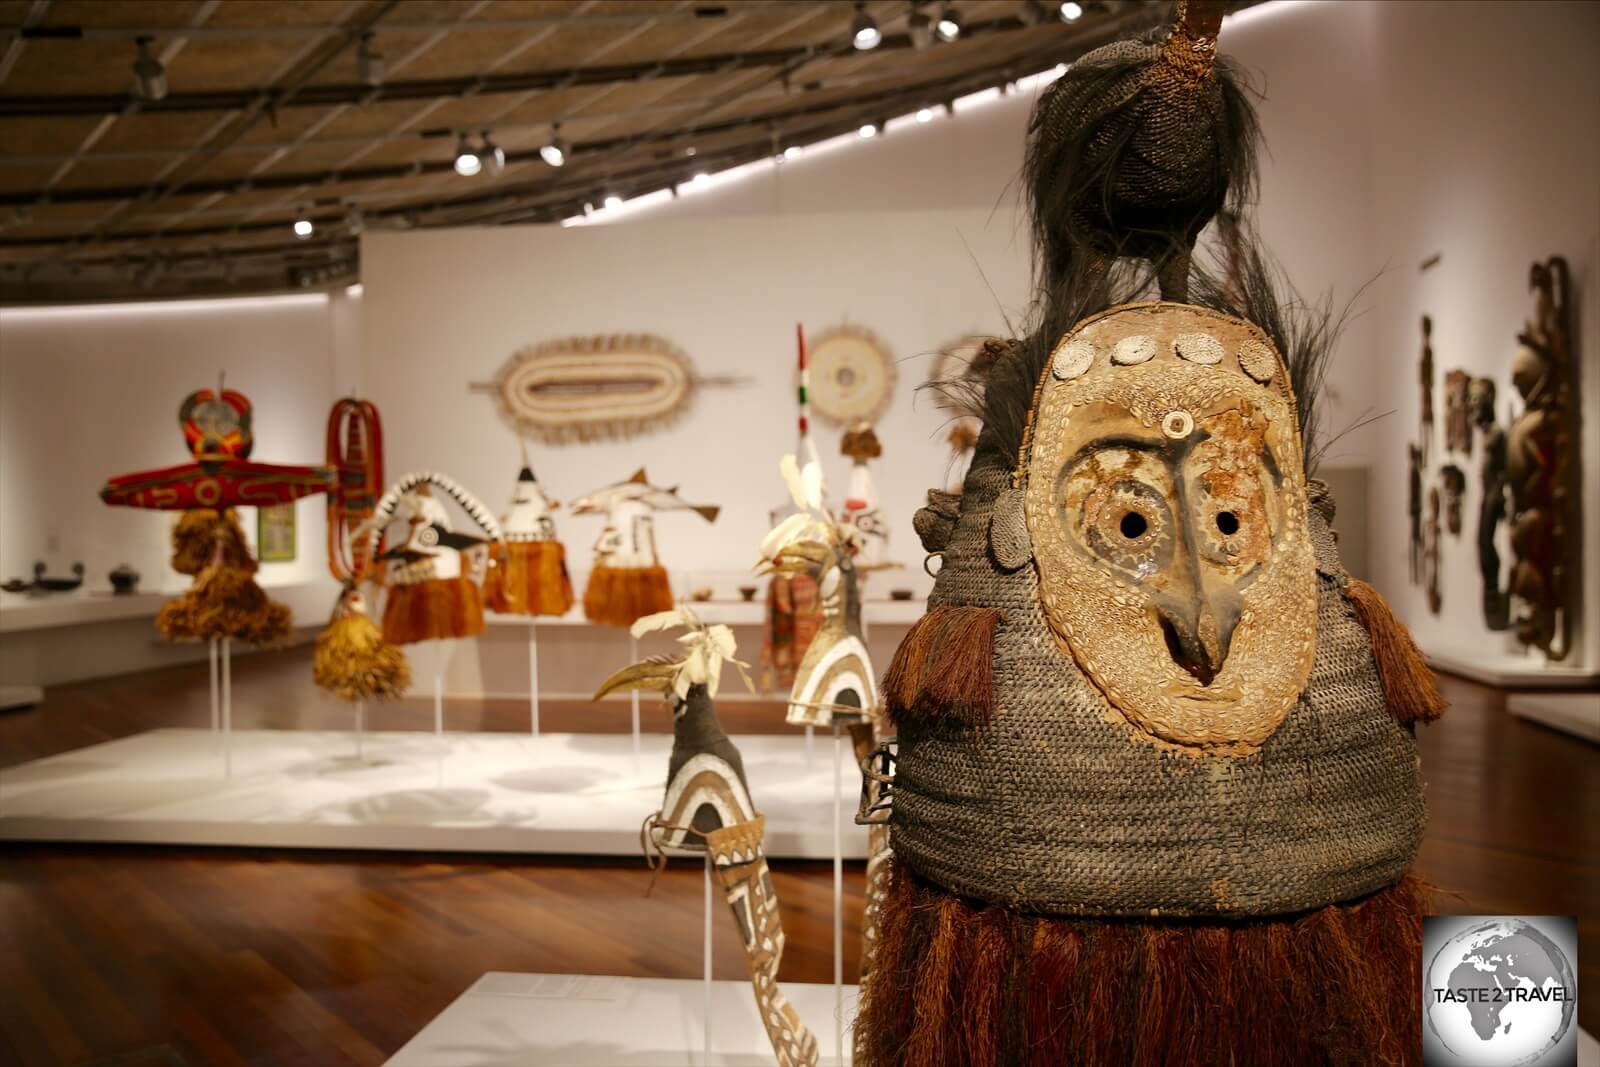 The National Museum & Art Gallery in Port Moresby showcases the many diverse tribal cultures which can still be found in modern-day PNG.